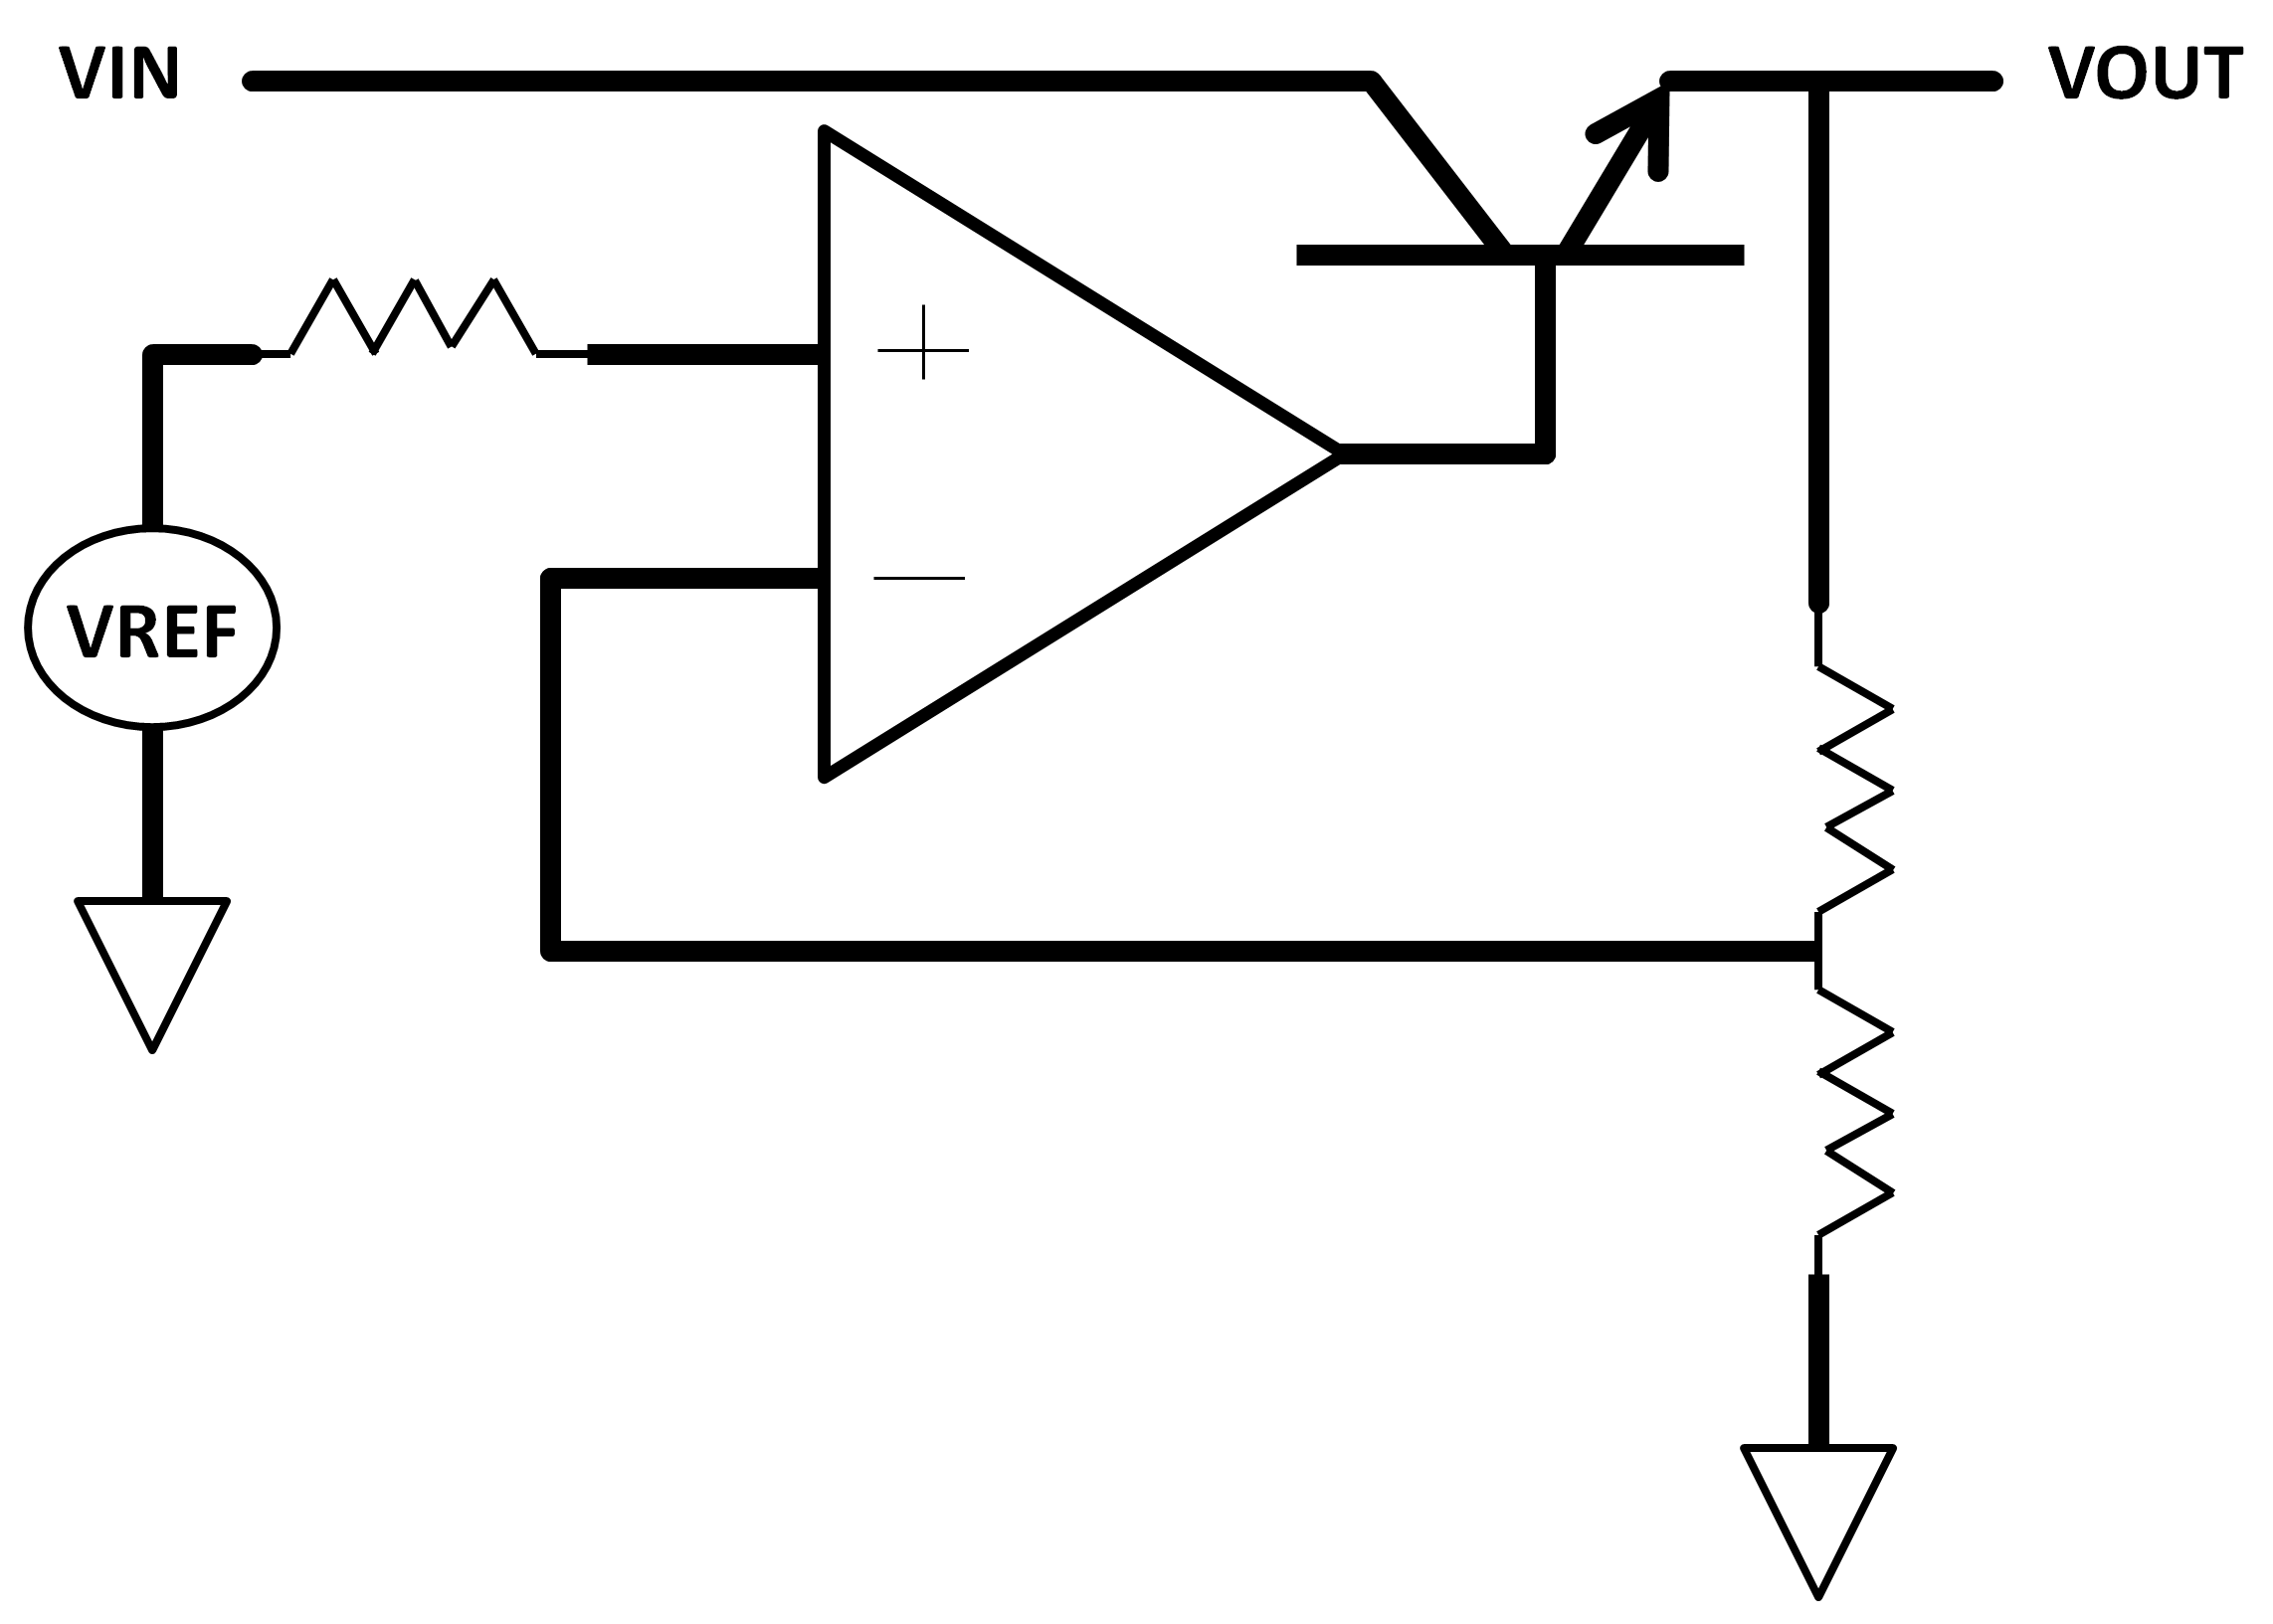 opamp_linear_regulator.png